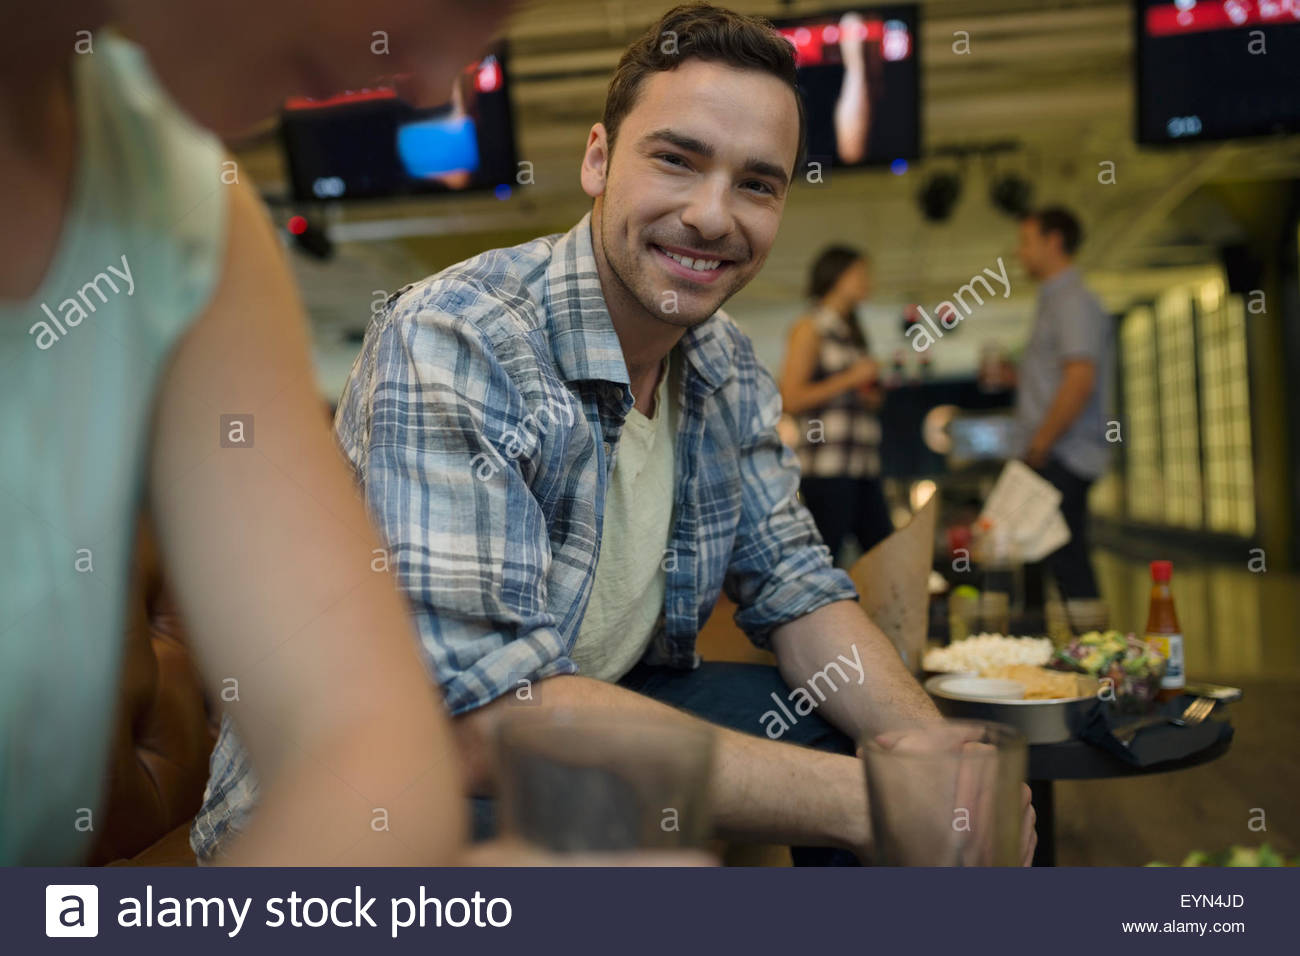 Portrait smiling young man with friends bowling alley Stock Photo